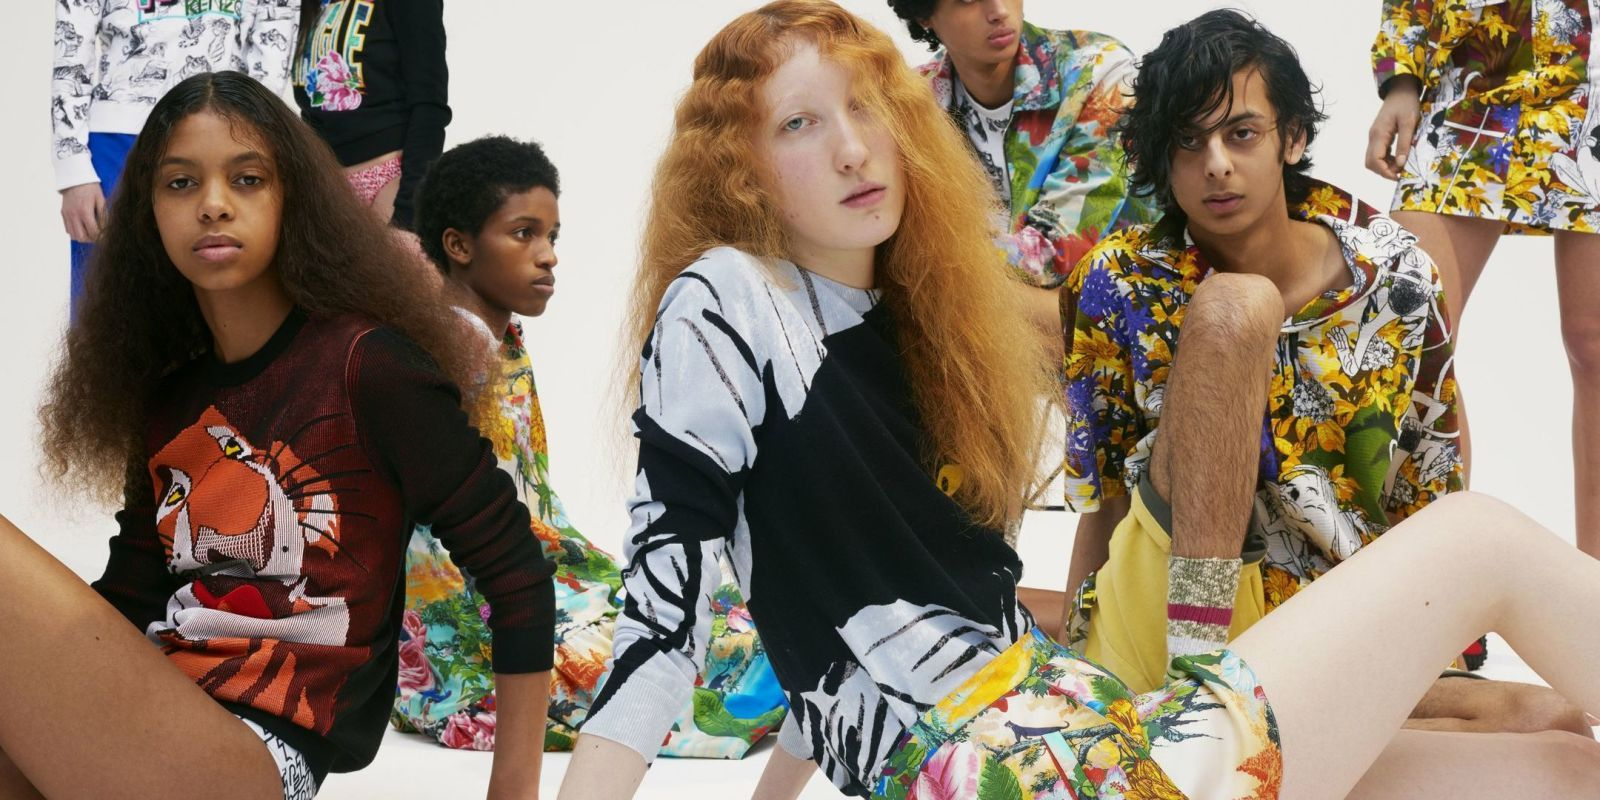 Kenzo's Jungle Book Collection is Made for Your Inner Disney Lover http://ift.tt/1pTsuwg #ELLE #Fashion